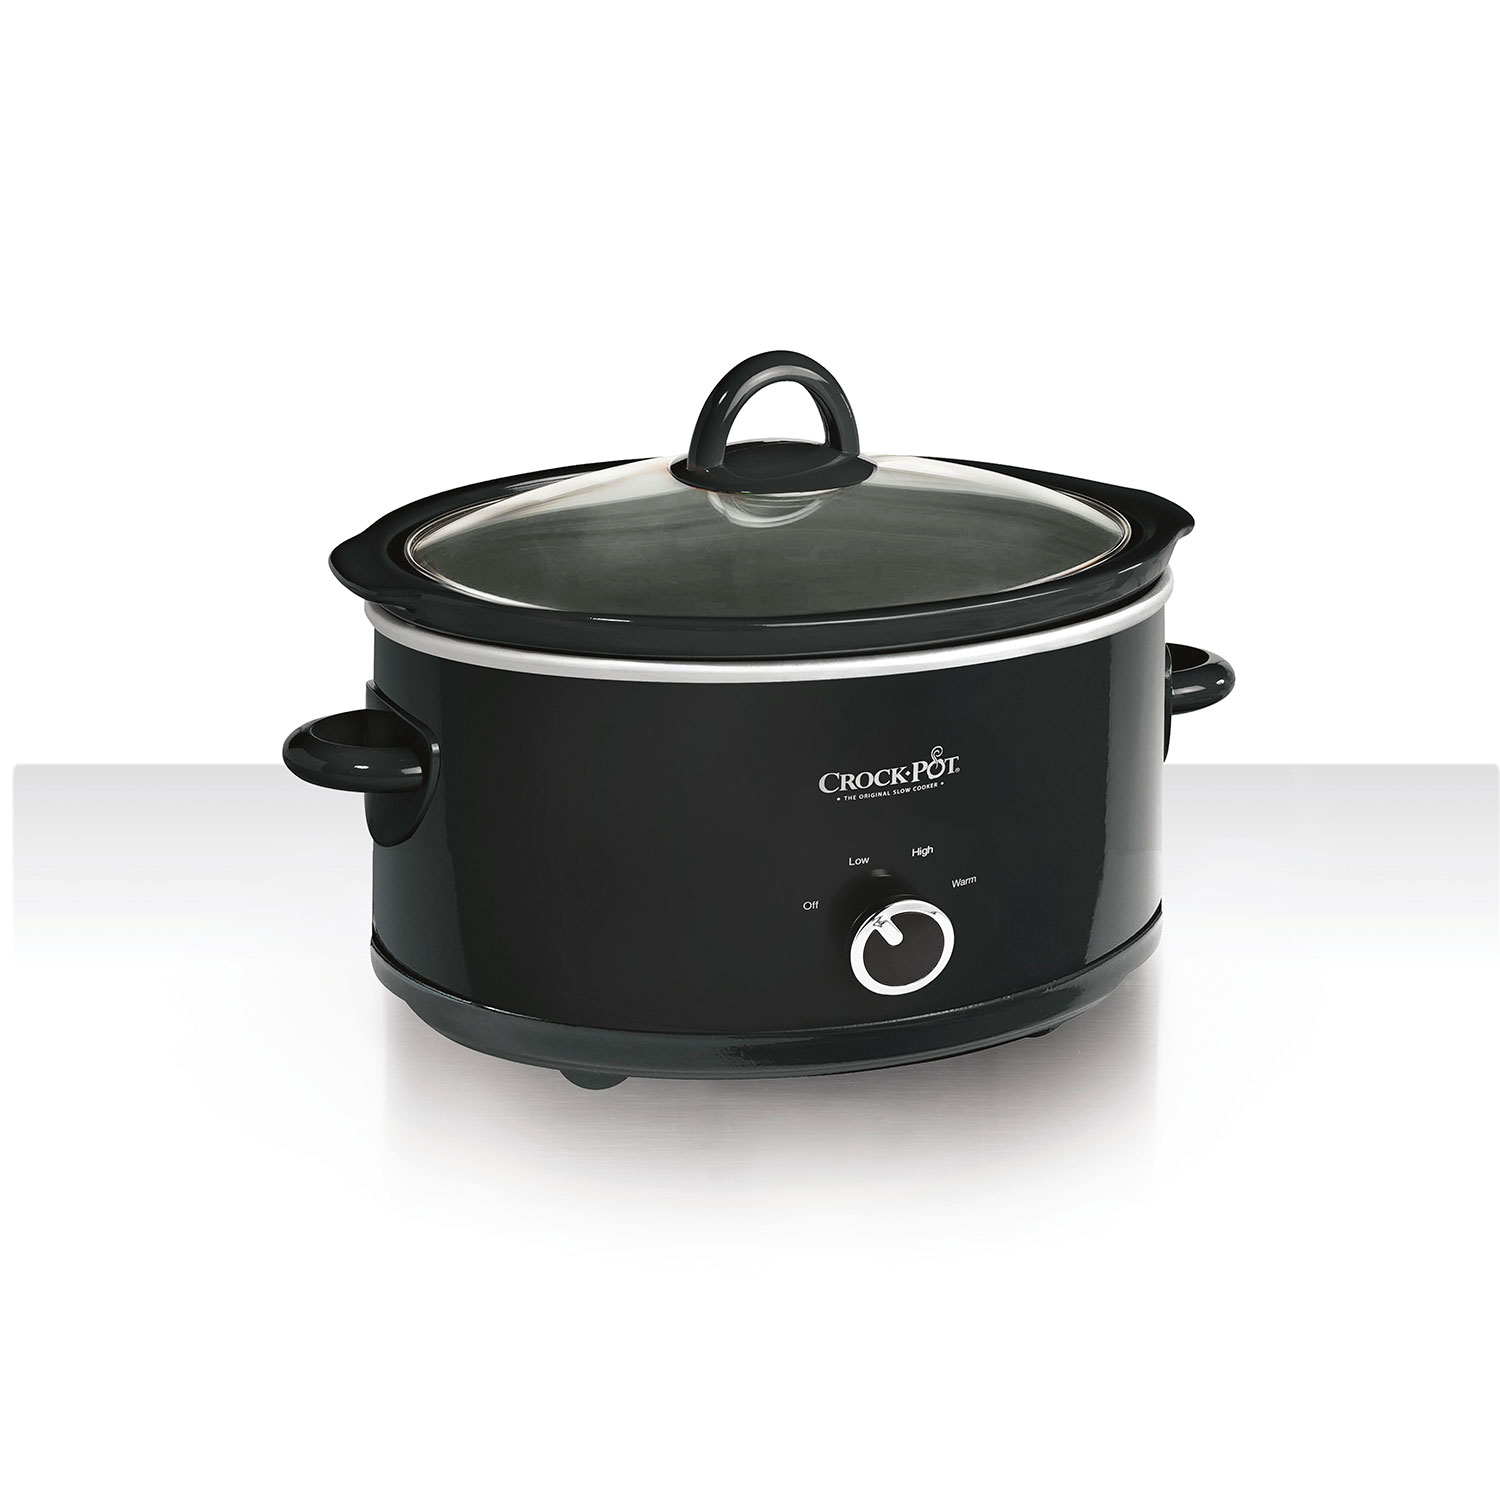 crock pot 7-quart manual slow cooker